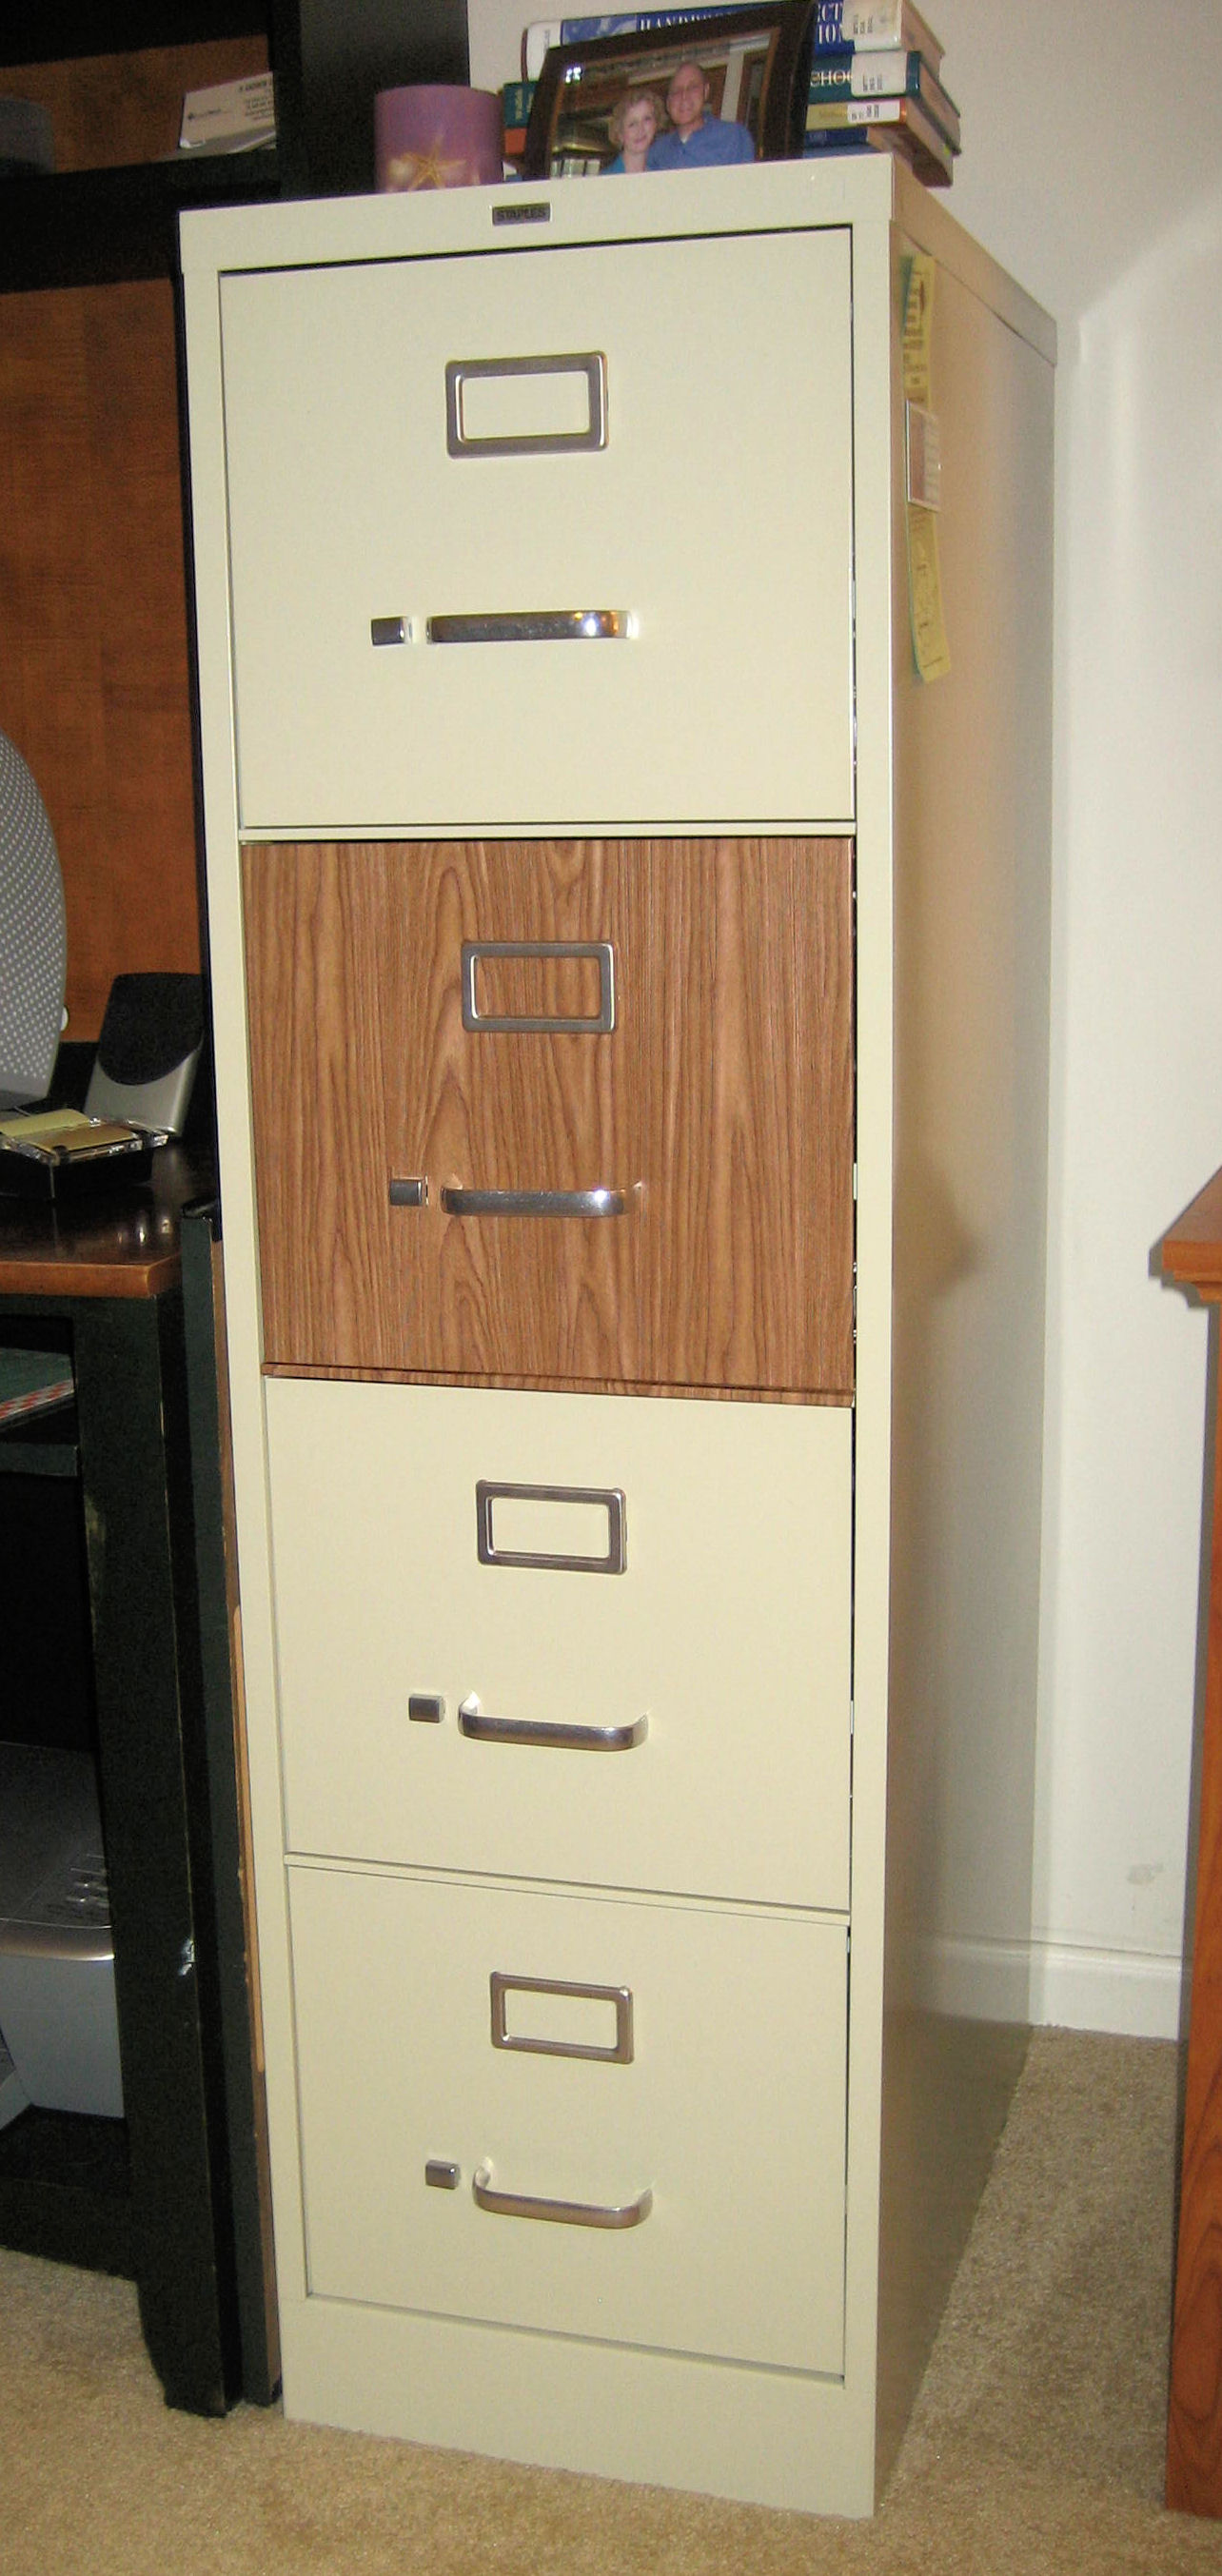 Picture of Step Back and Admire Your New and Improved File Cabinet!